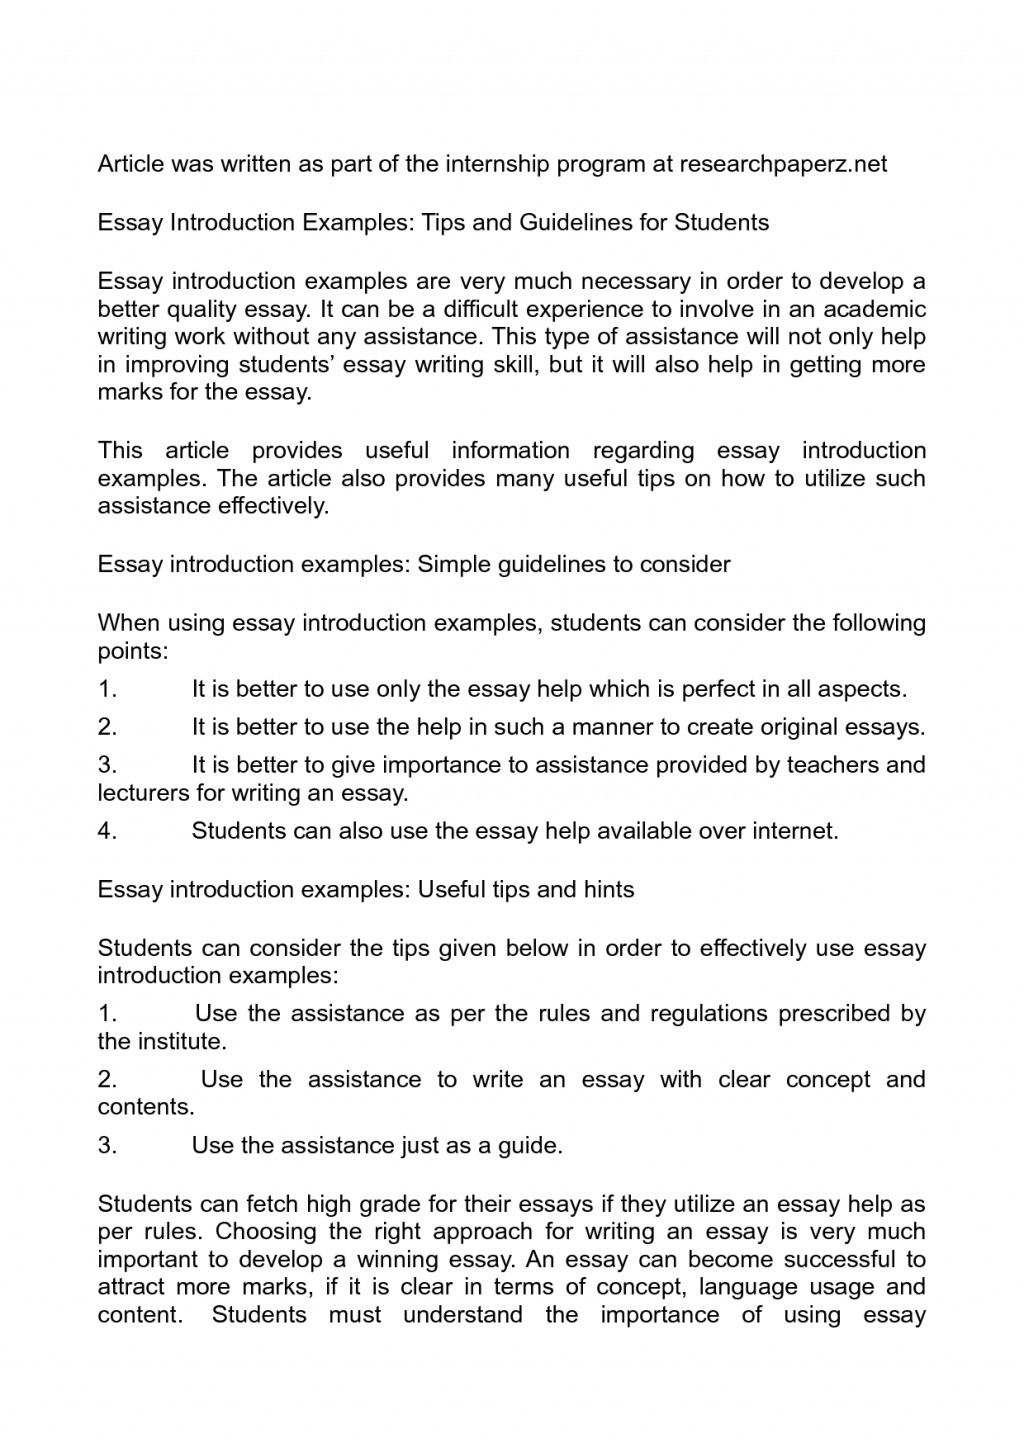 016 Concept Essays Eyx5t6okob Stunning Essay Examples Low Self Esteem Paper Large